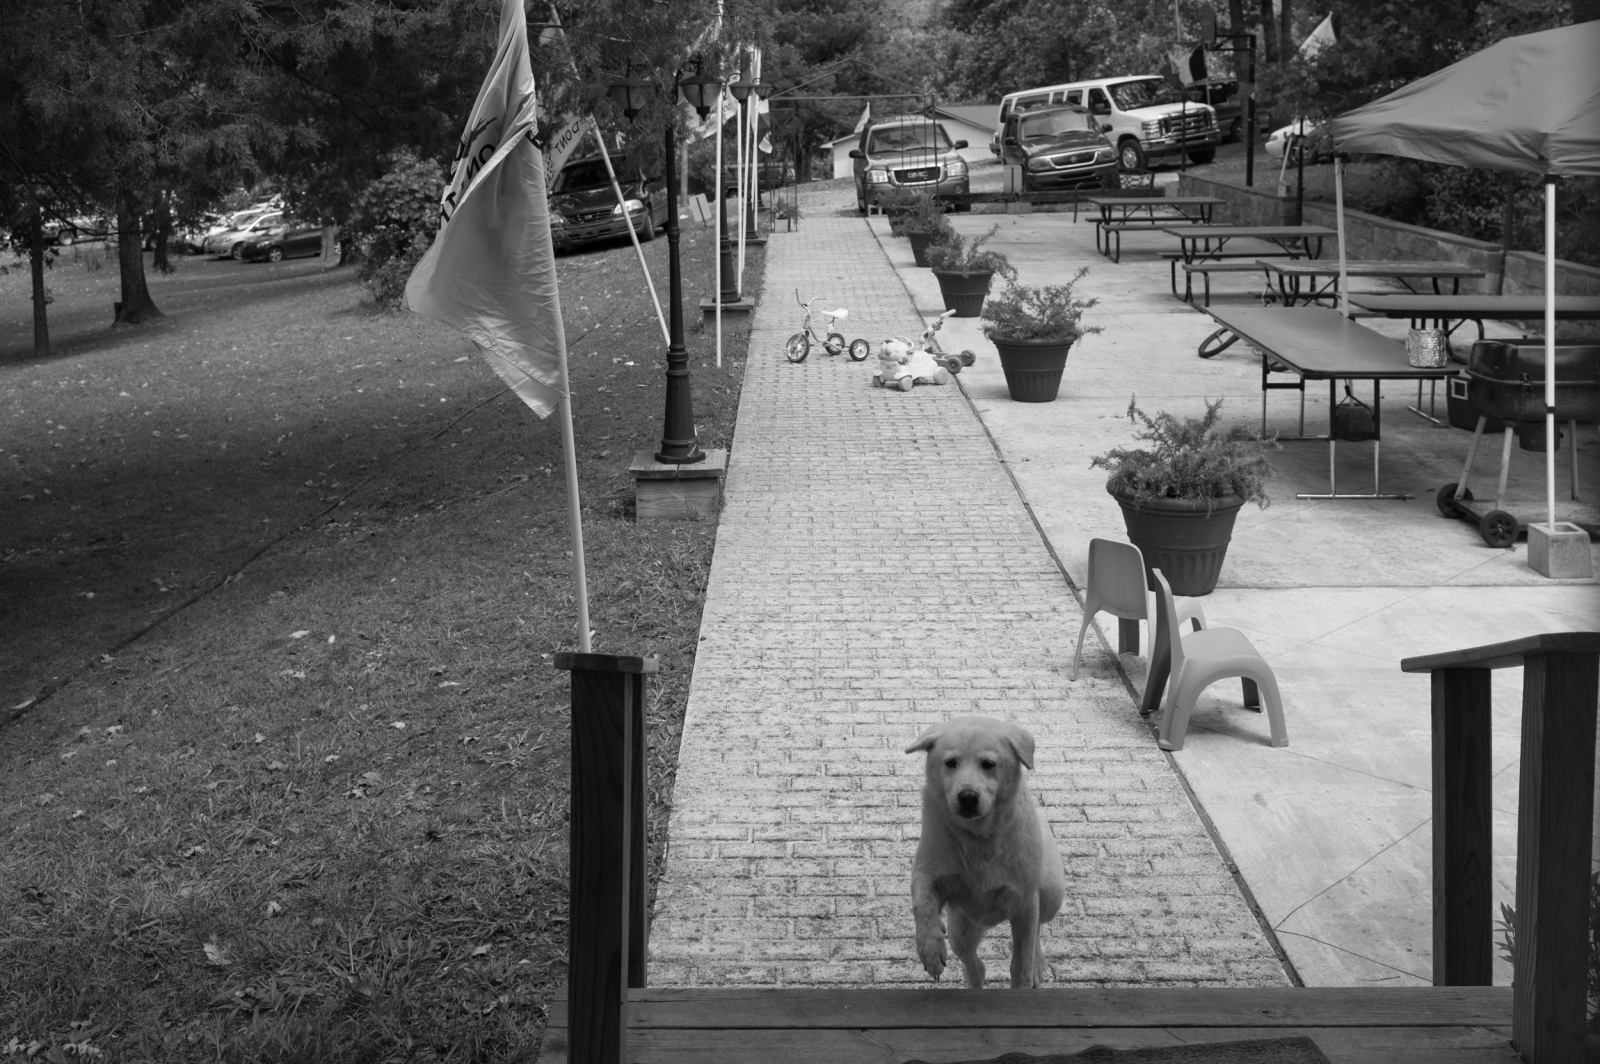 """Zinc, Arkansas.Thomas Robb's dog """"White Dog,"""" coming up the steps at the Knights Party of the KKK's church compound."""